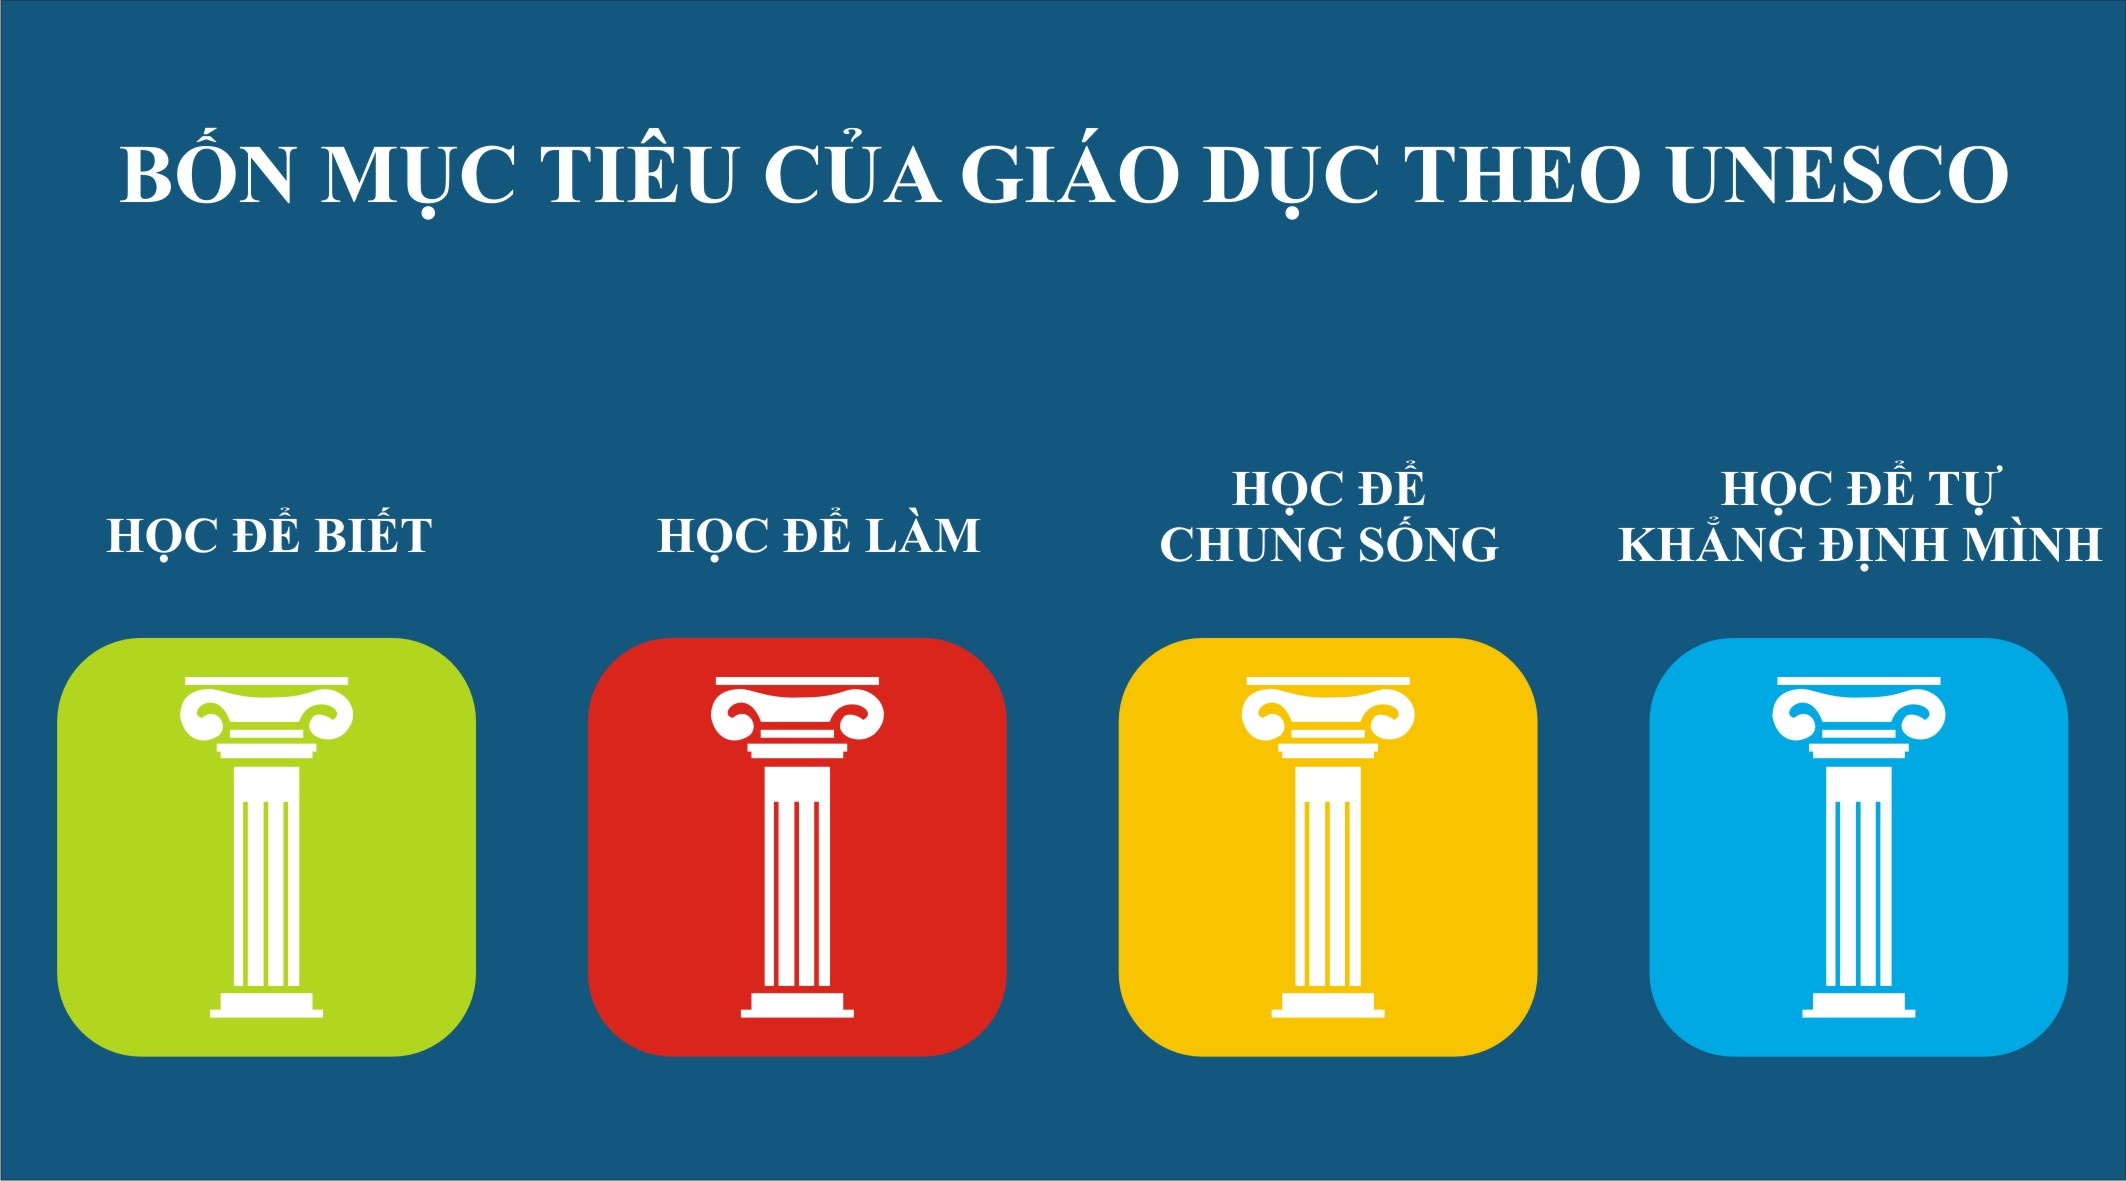 4 trụ cột giáo dục theo UNESCO